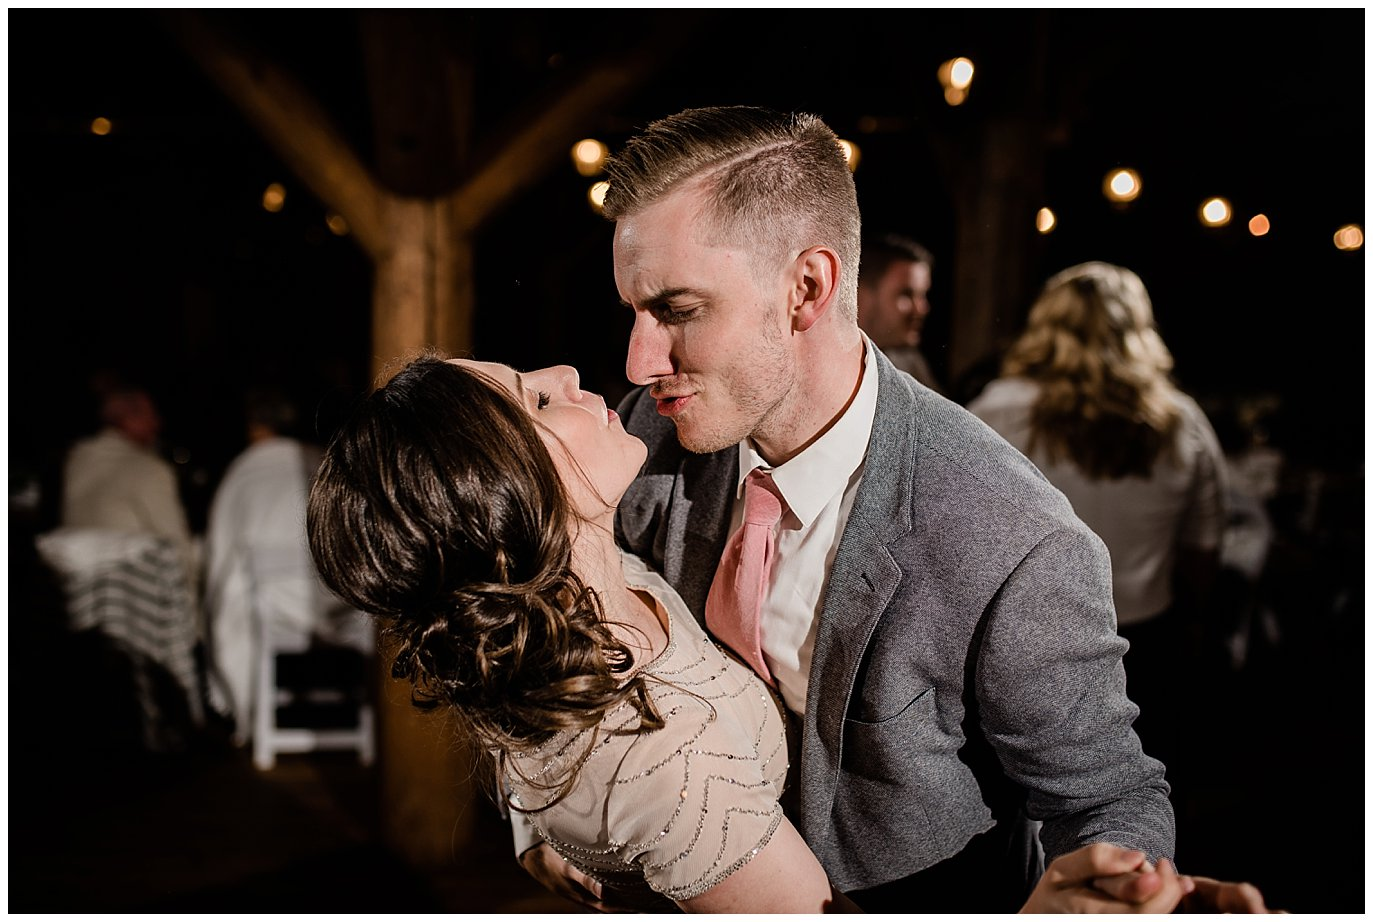 guests dancing during Colorado wedding reception at Piney River Ranch wedding by Aspen wedding photographer Jennie Crate, Photographer